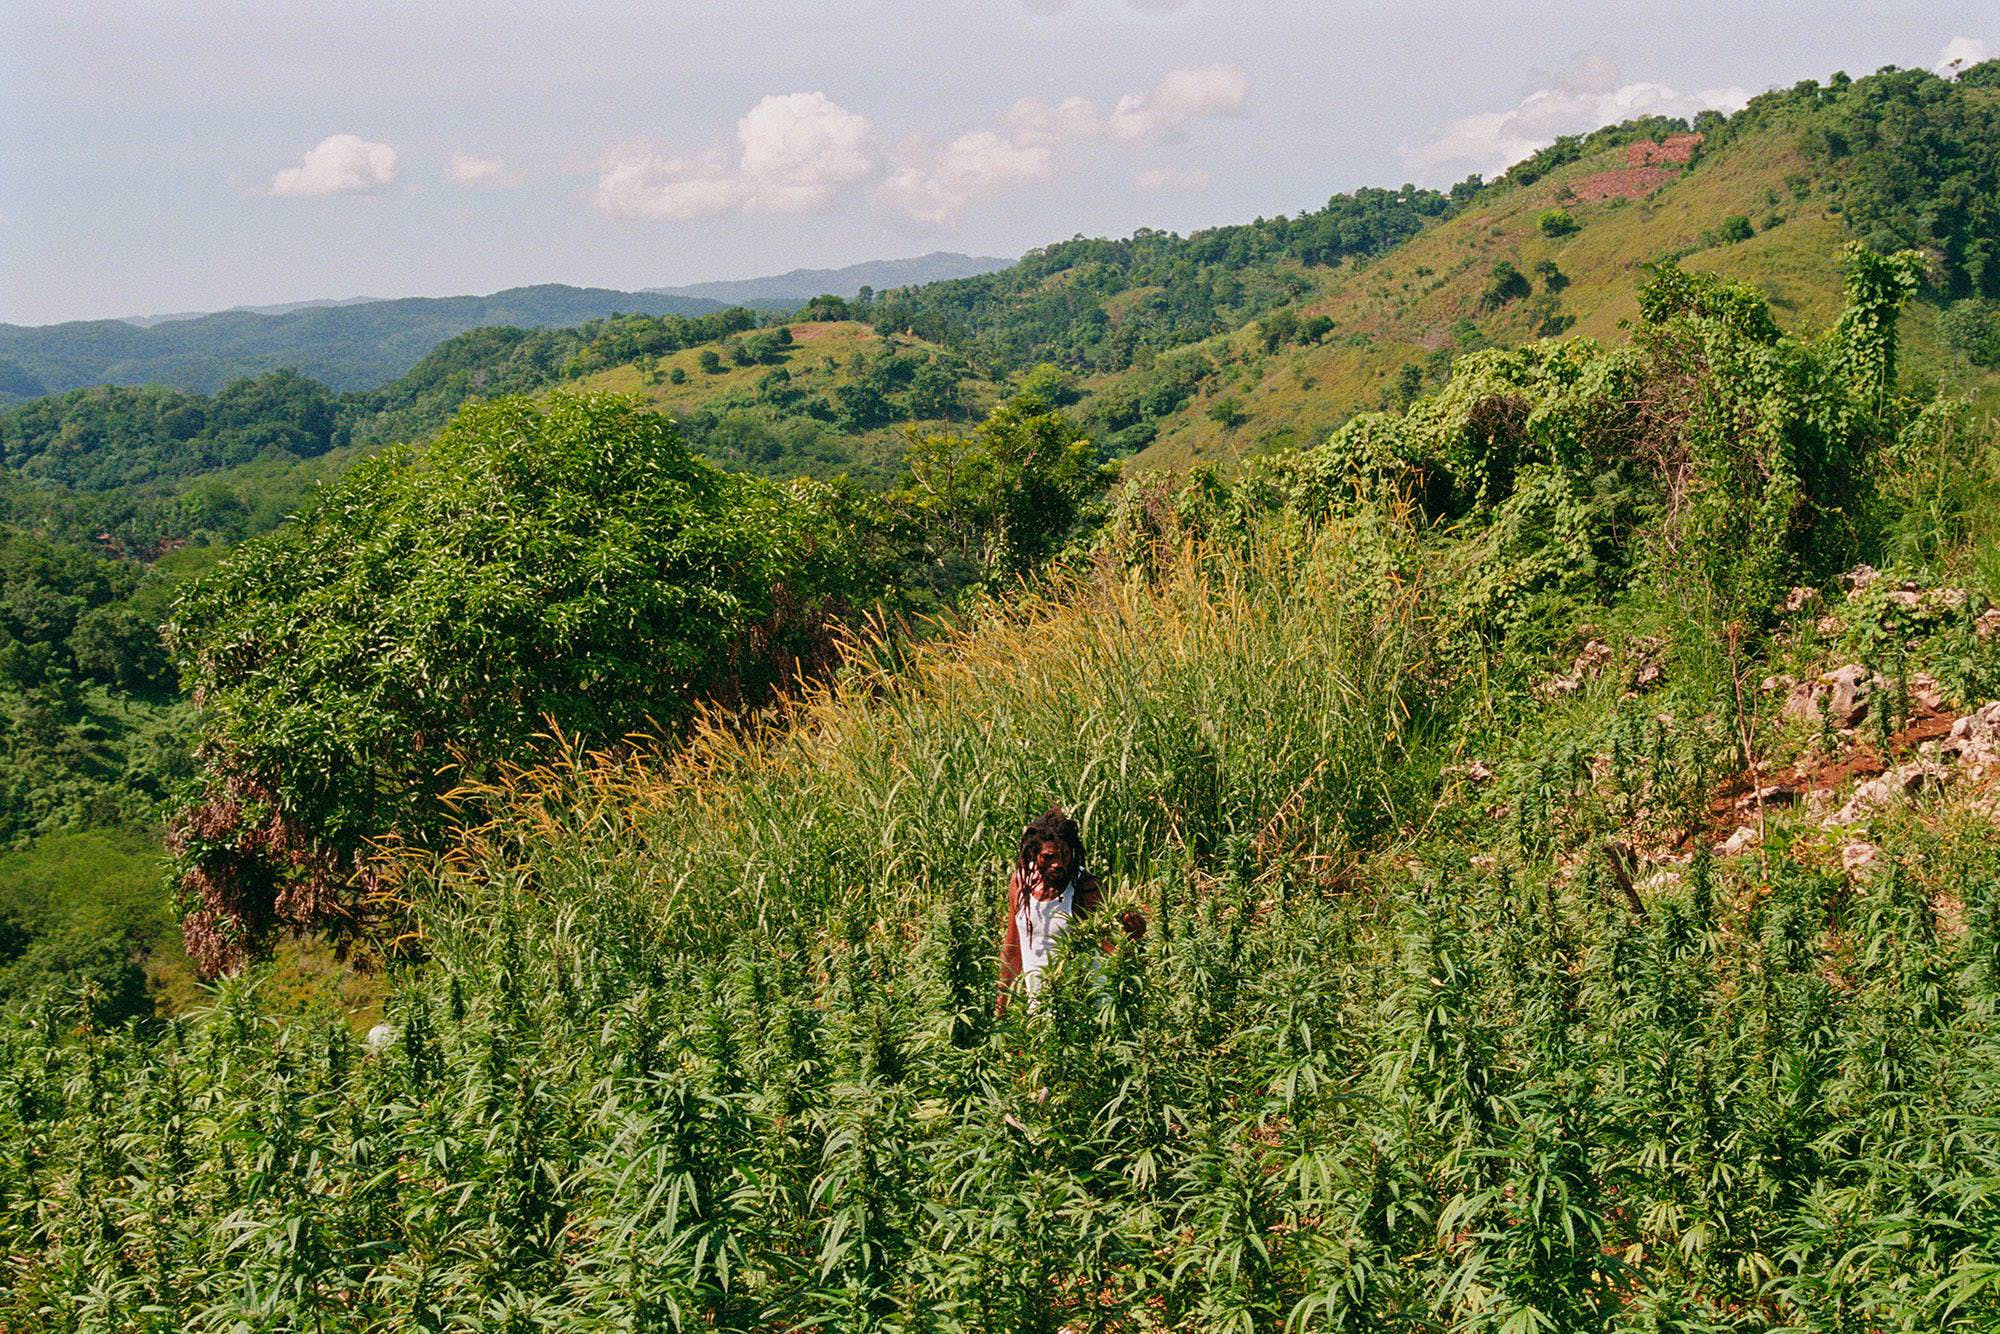 The Five Countries Most Likely To Legalize Cannabis Next1 The 5 Countries Most Likely to Legalize Cannabis Next